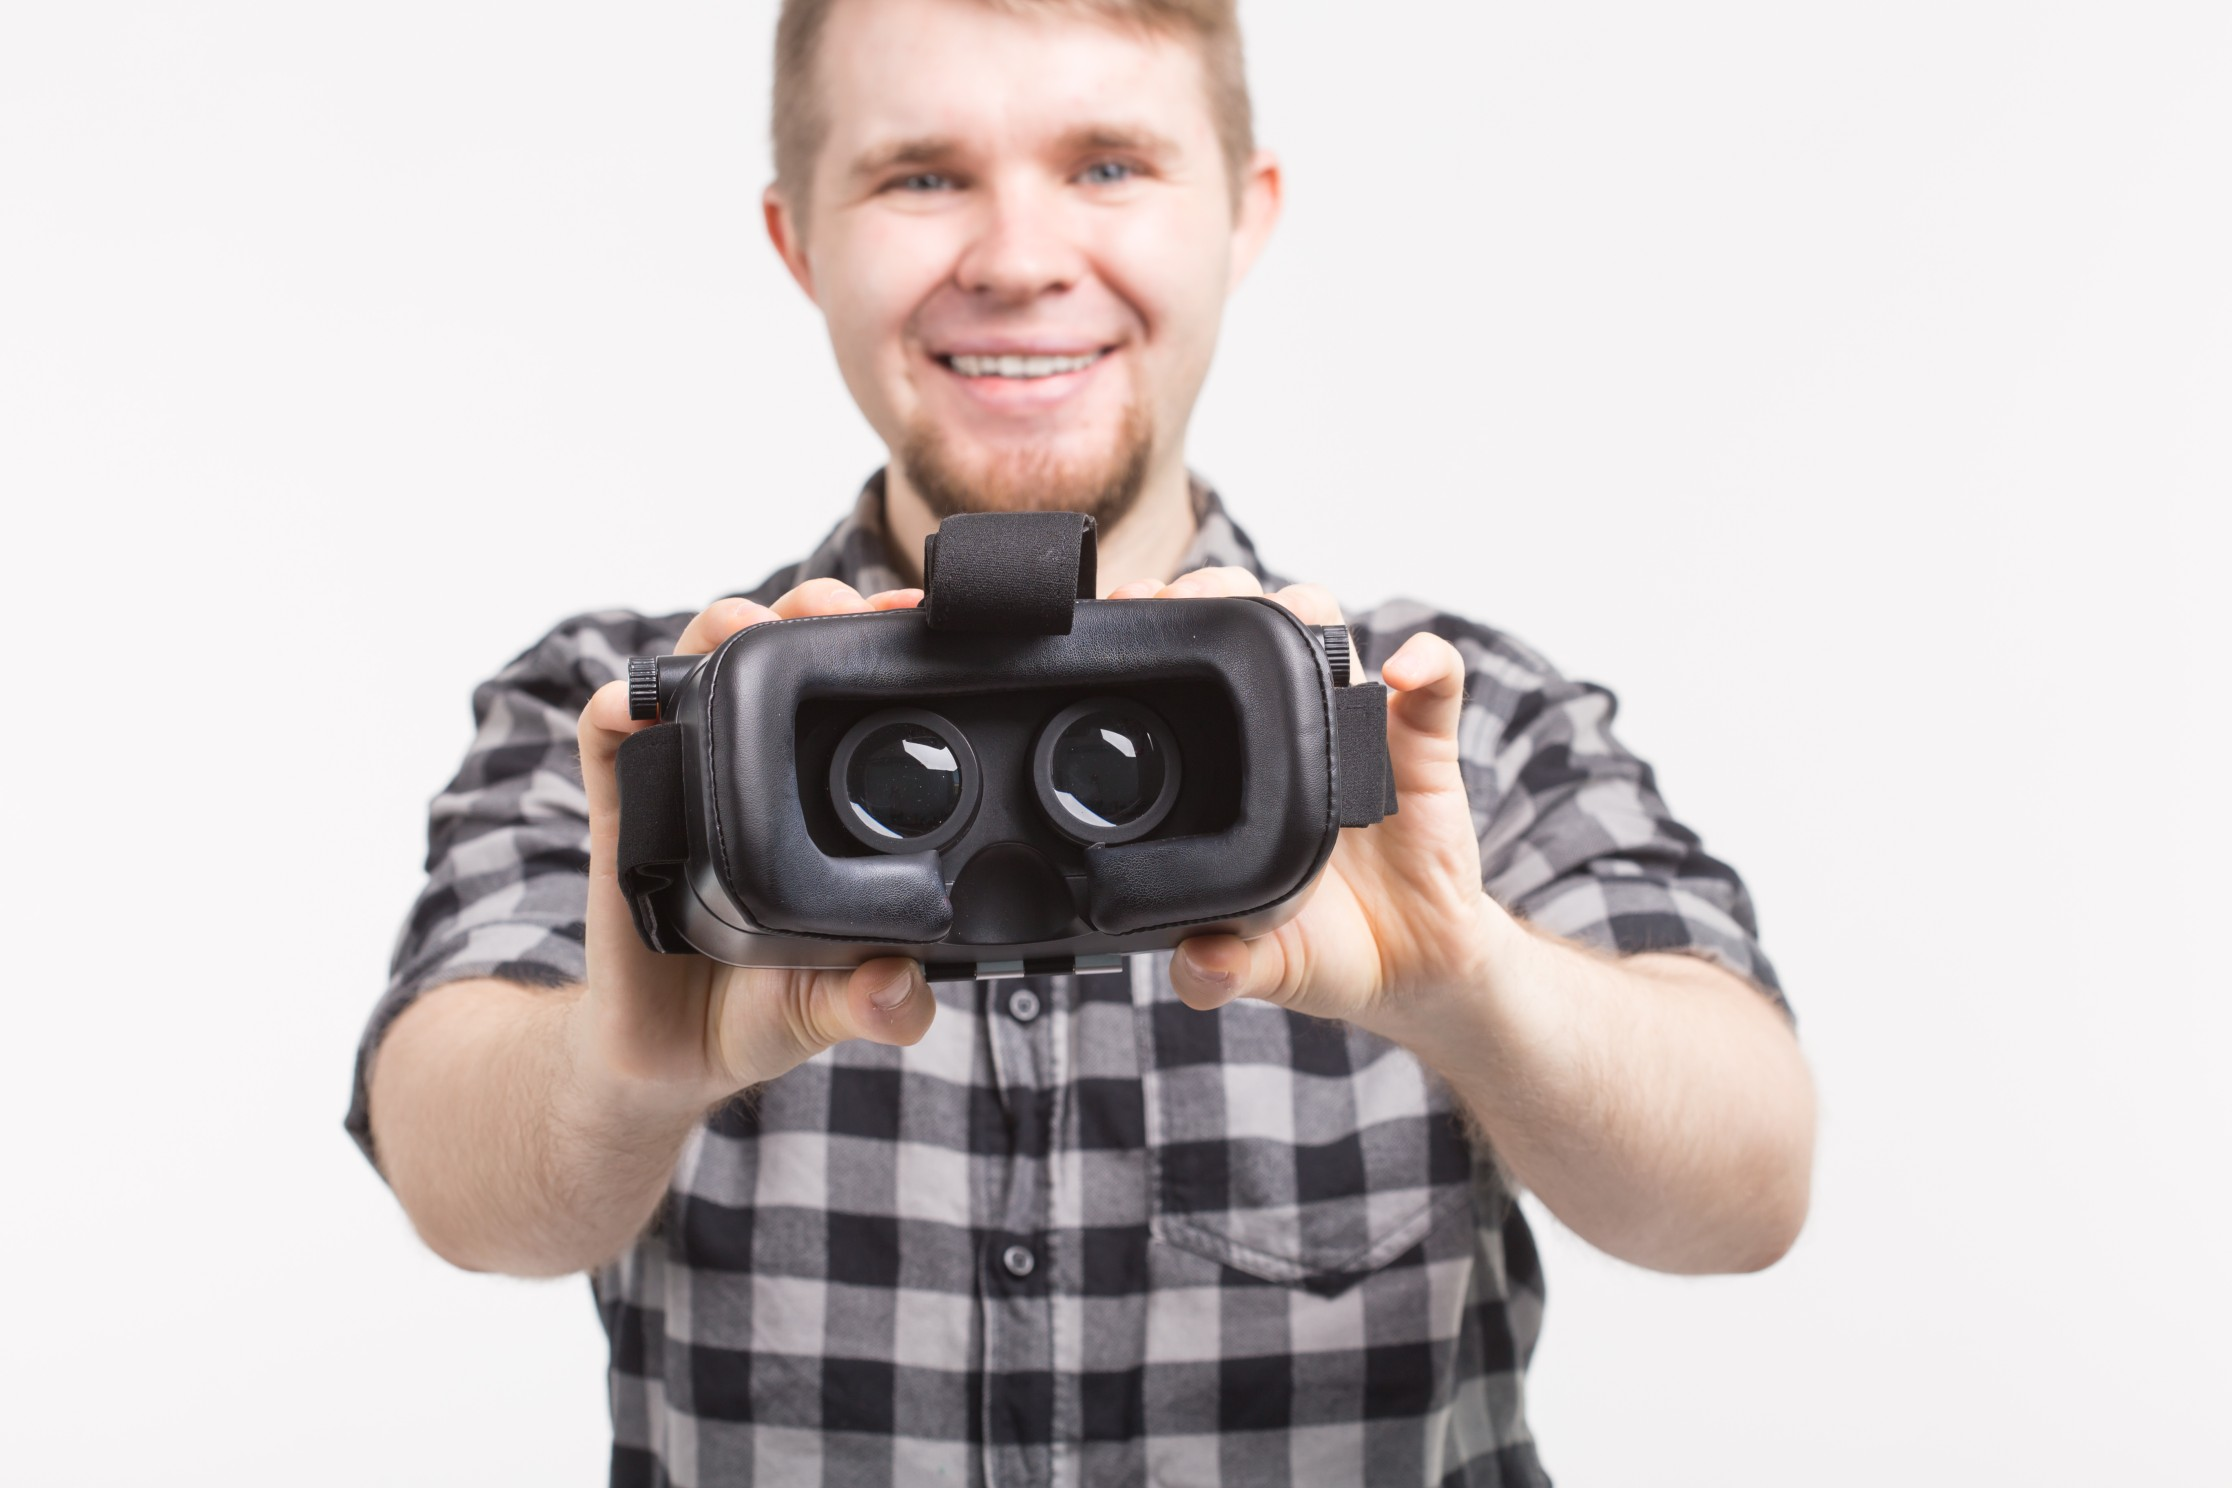 Instructor helps student put on a VR headset